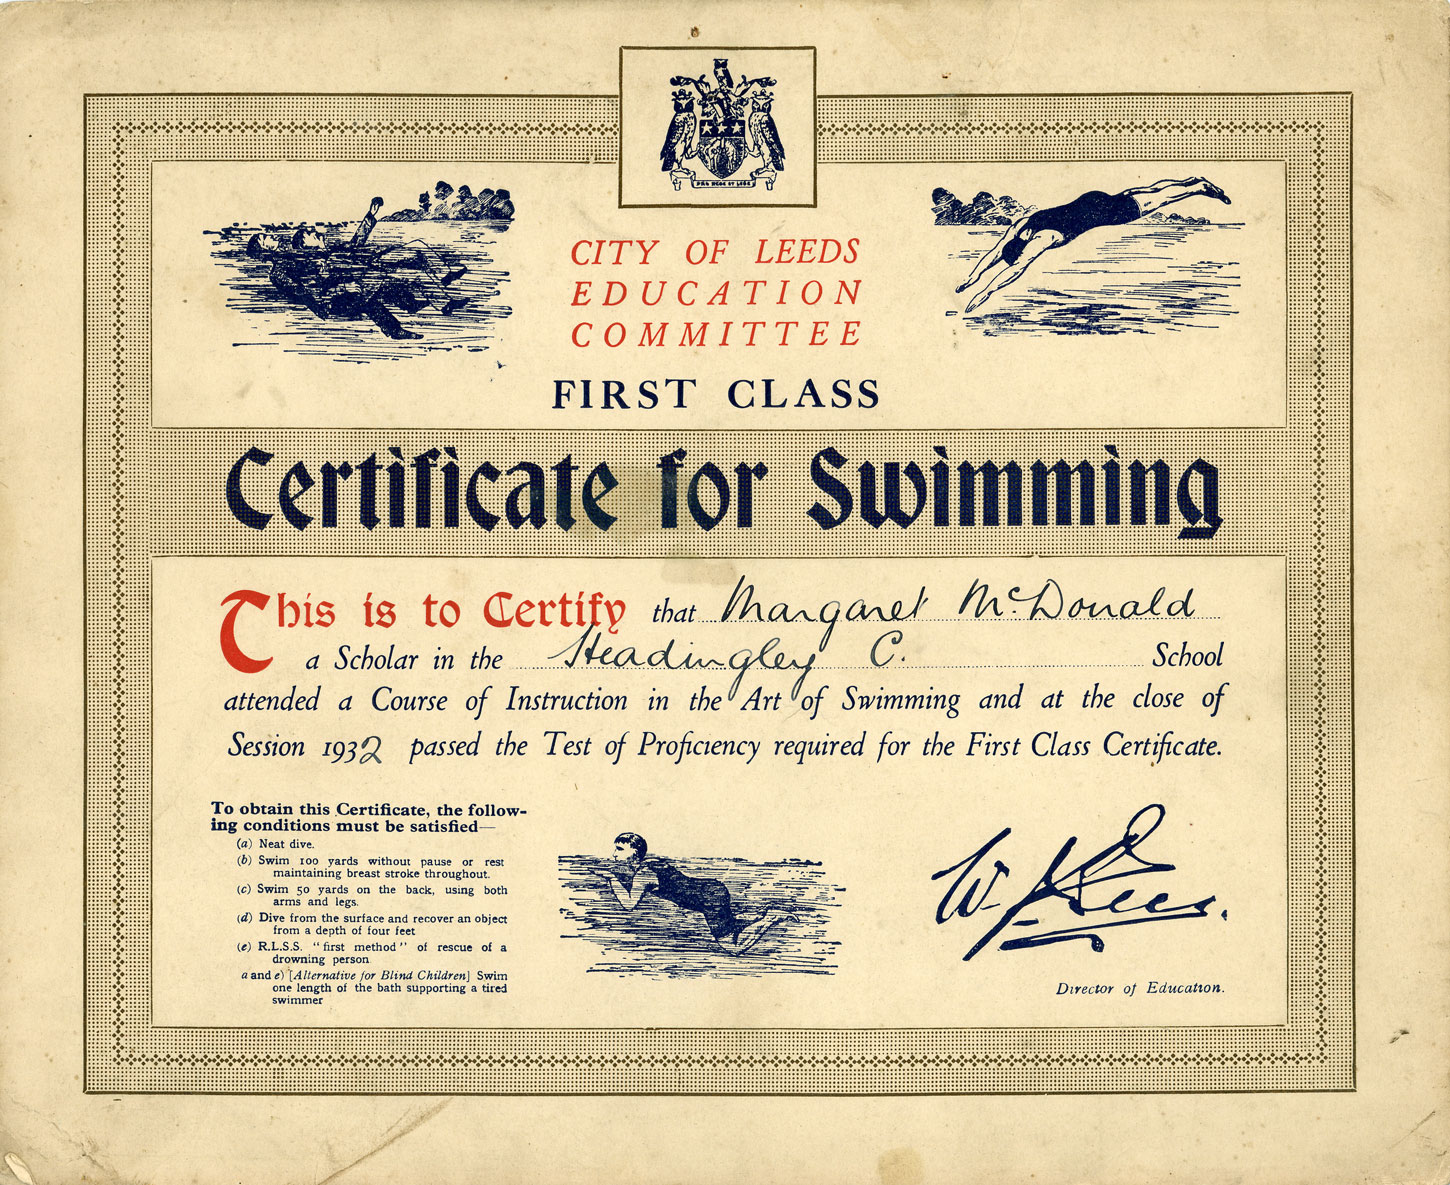 First Class swimming certificate with drawings of people swimming outdoors